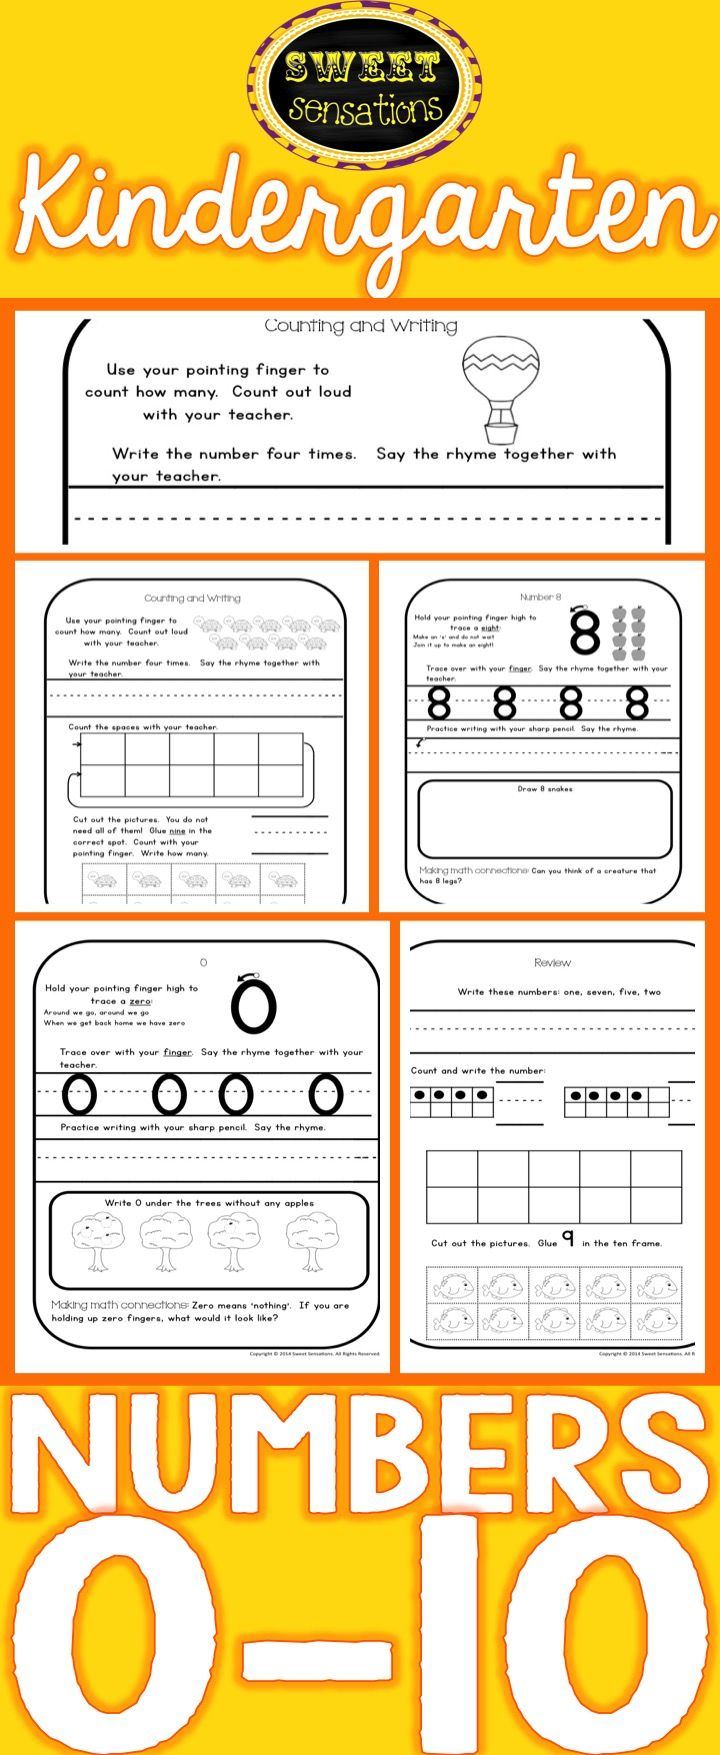 Kindergarten Numbers 0-10 | Number formation, Writing numbers and ...